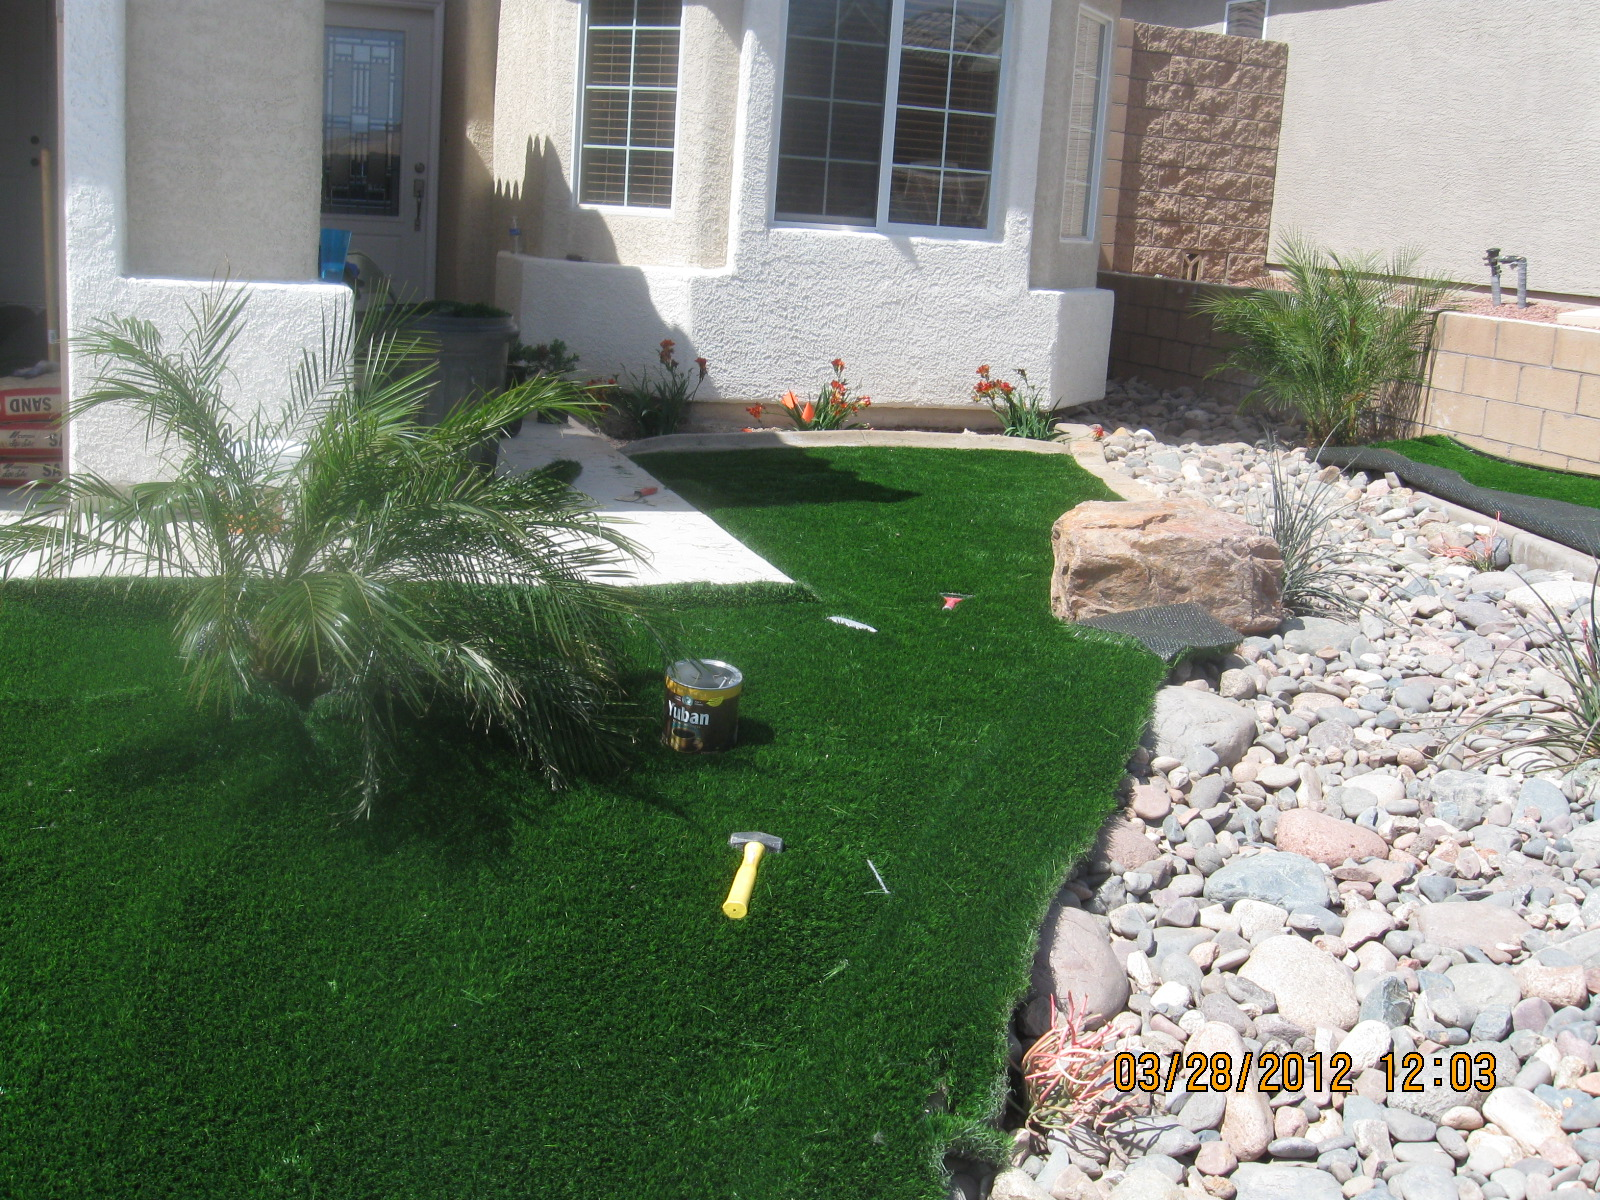 Do it yourself mojave curb turf diy install 1 solutioingenieria Image collections